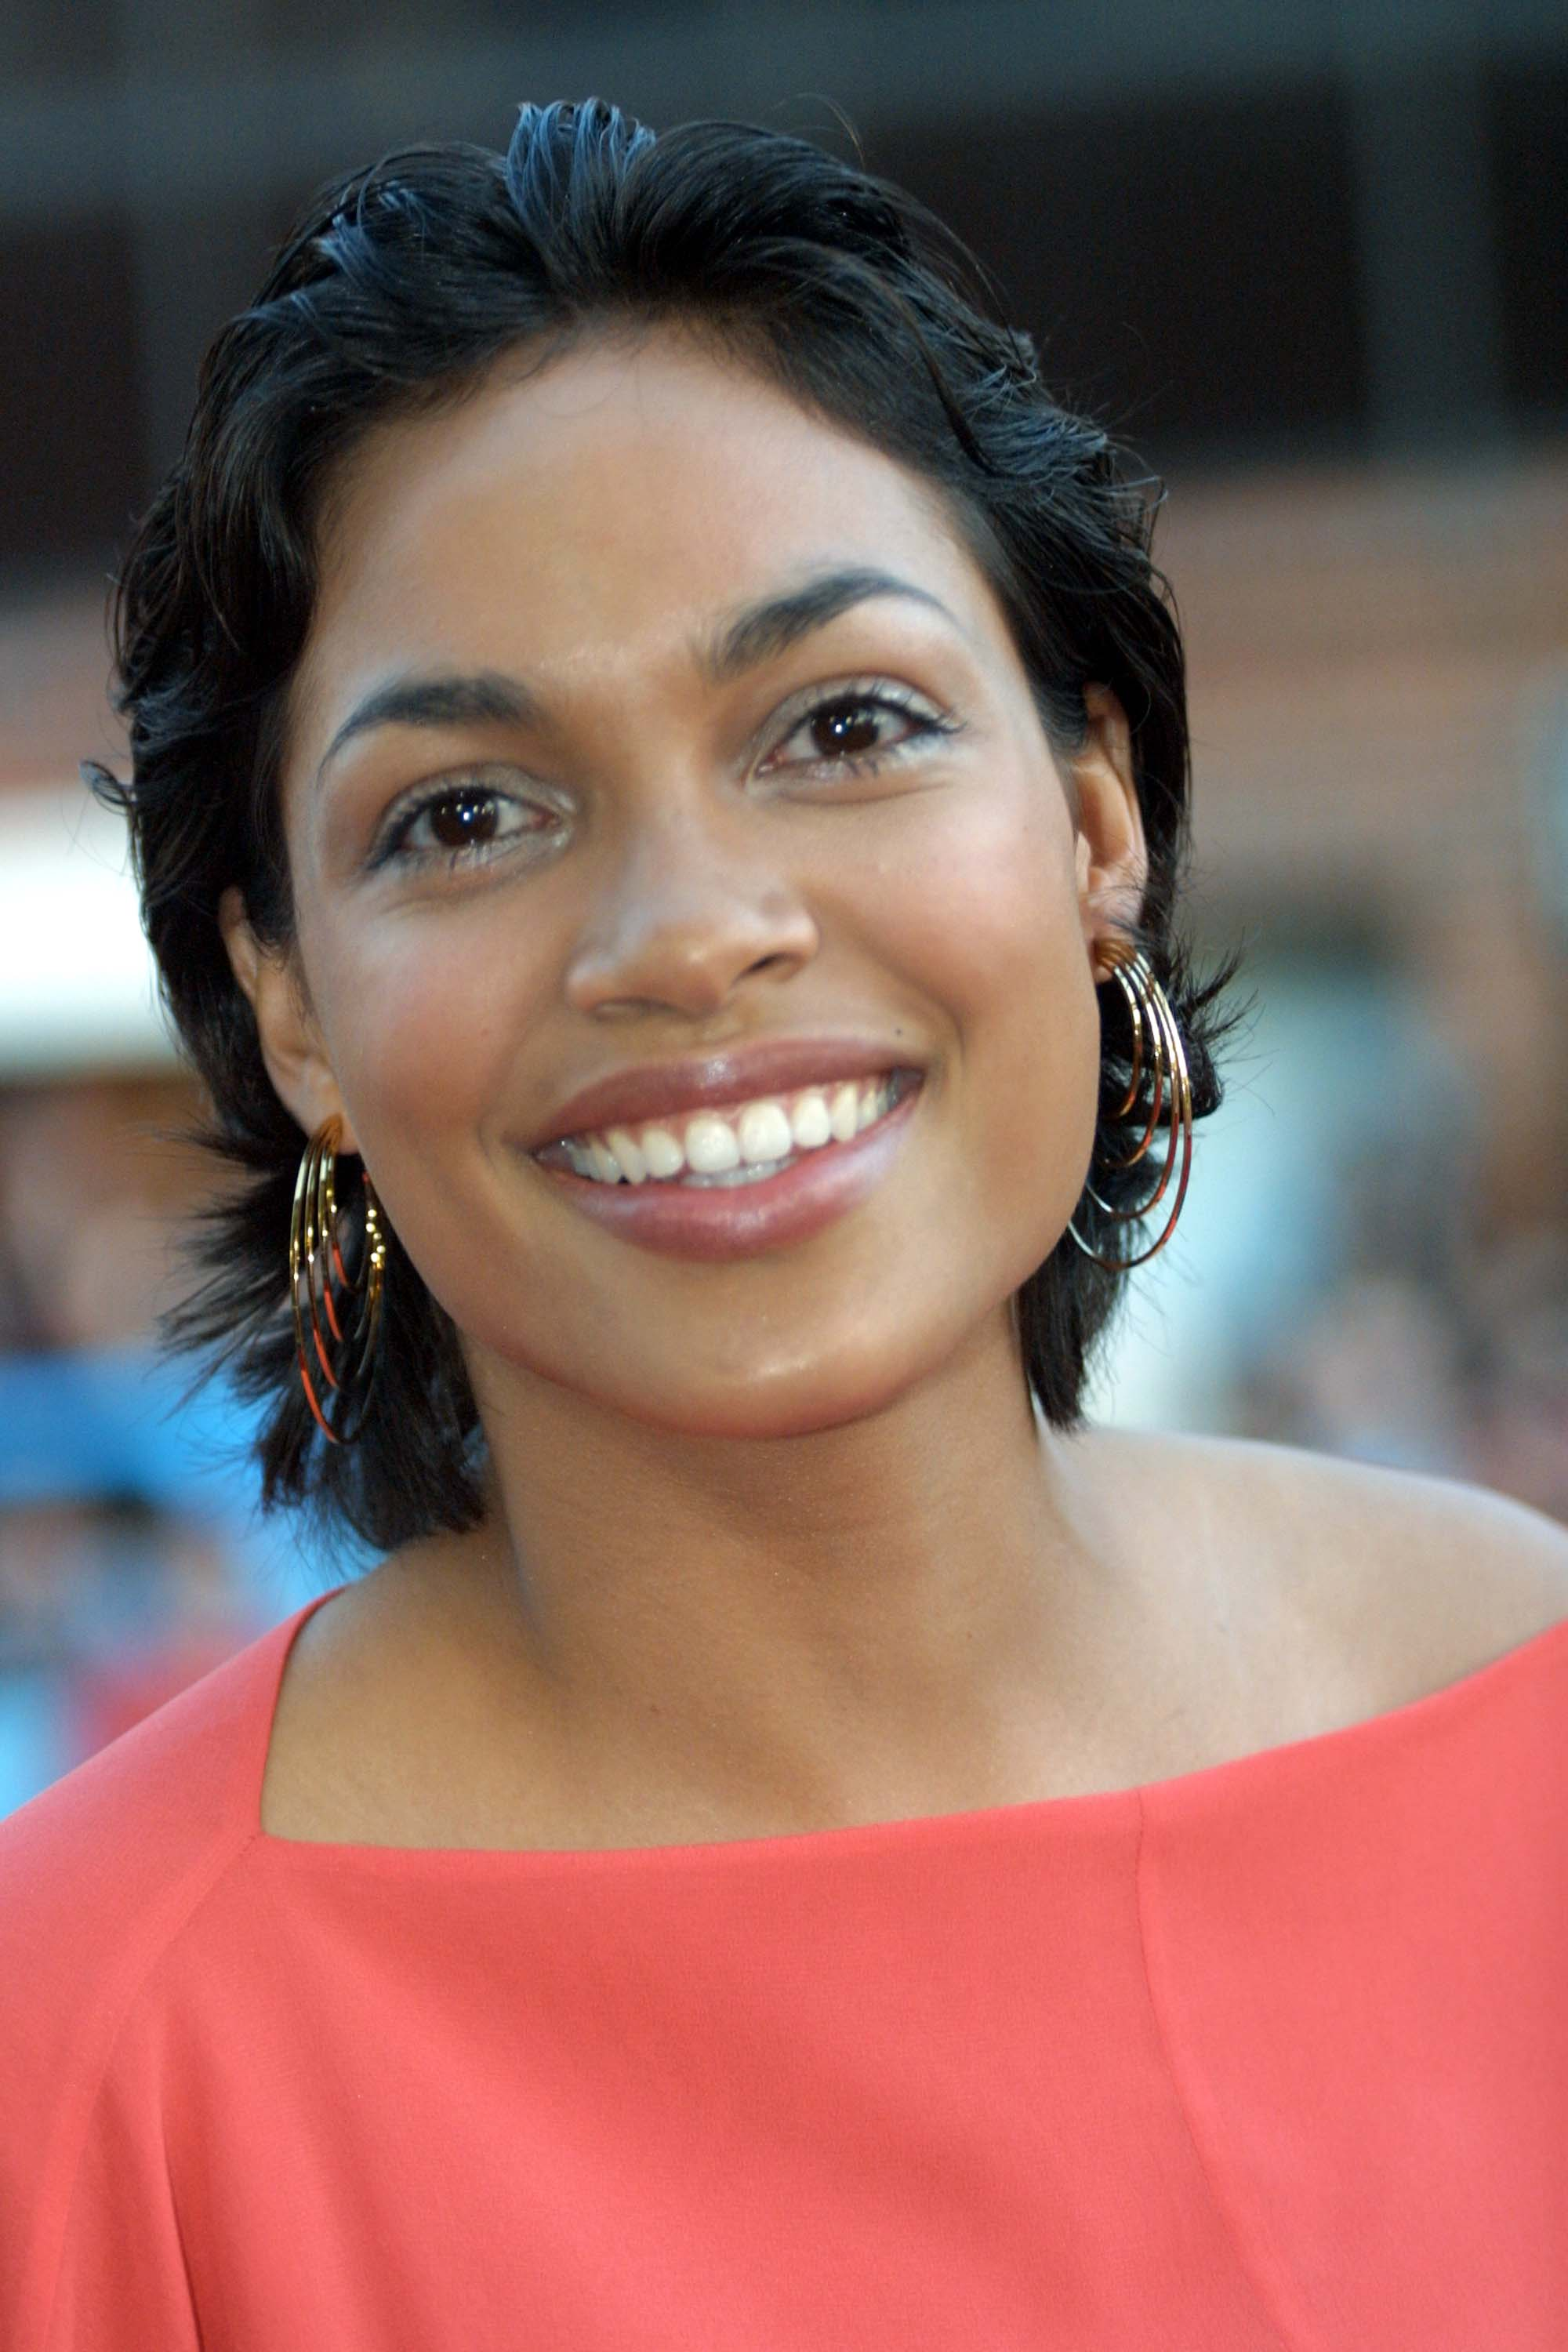 Rosario Dawson at an event for American Pie 2 (2001)